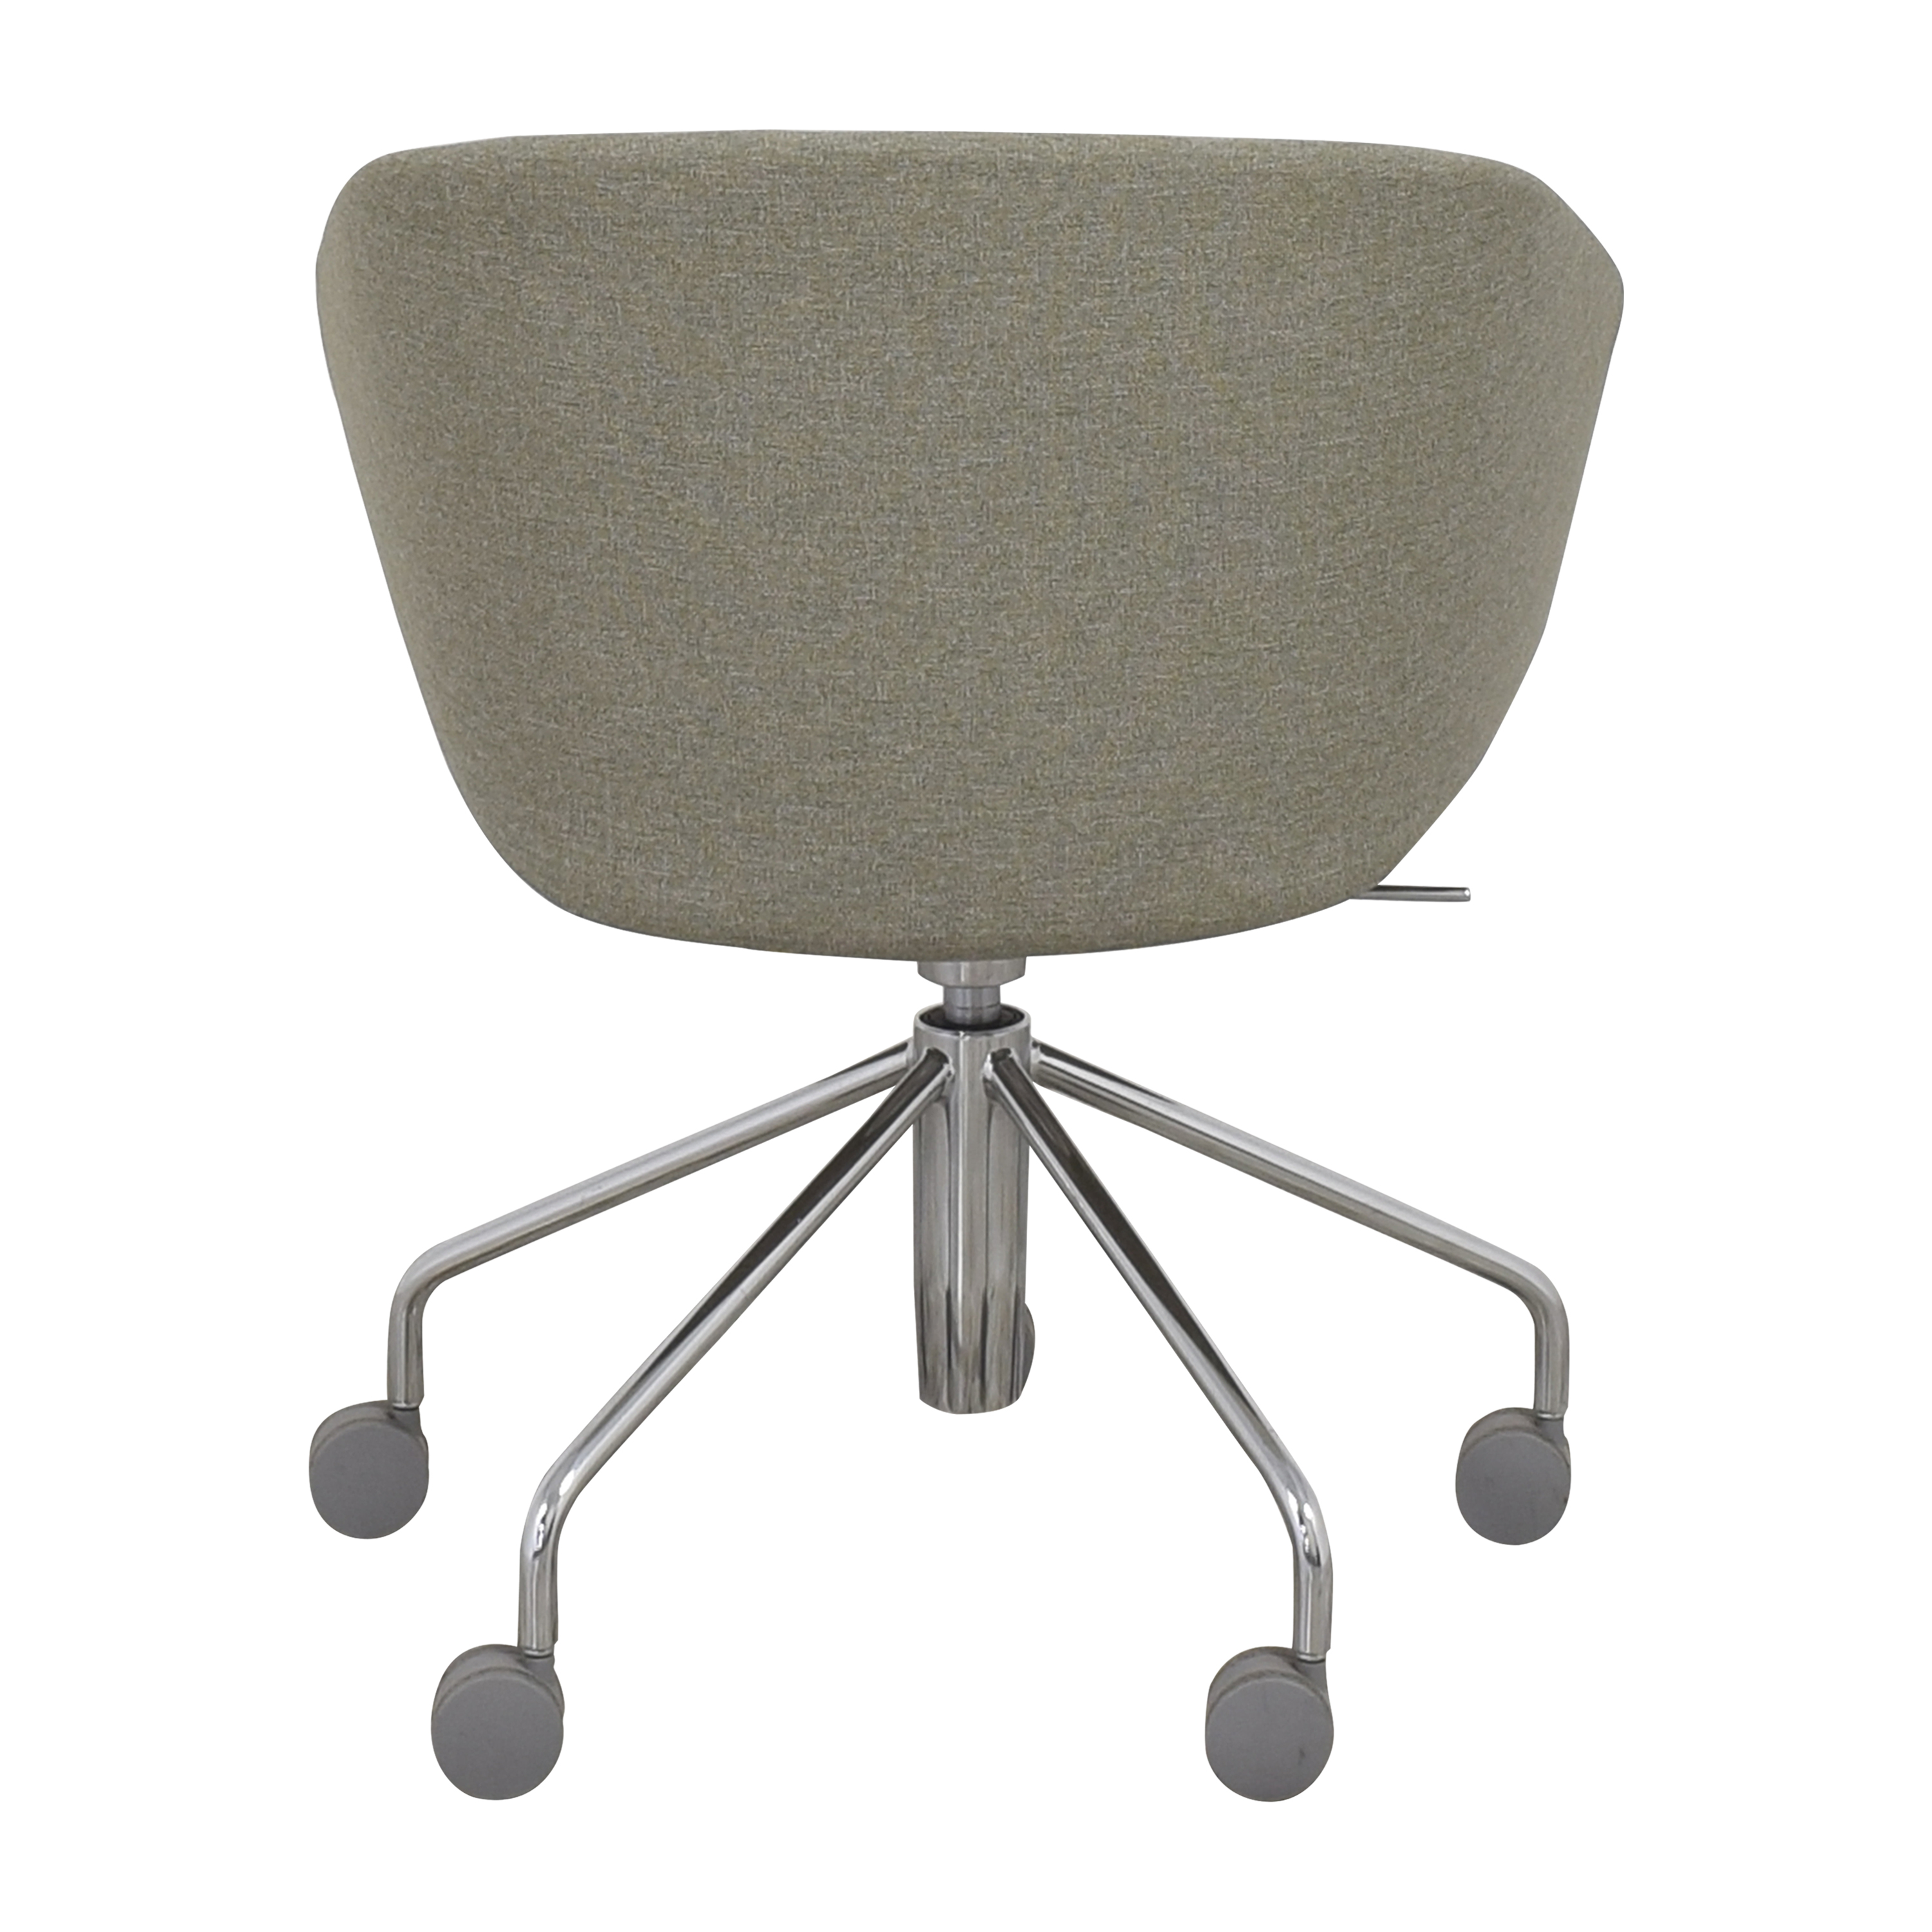 Poppin Poppin Pitch Meeting Chair gray and silver